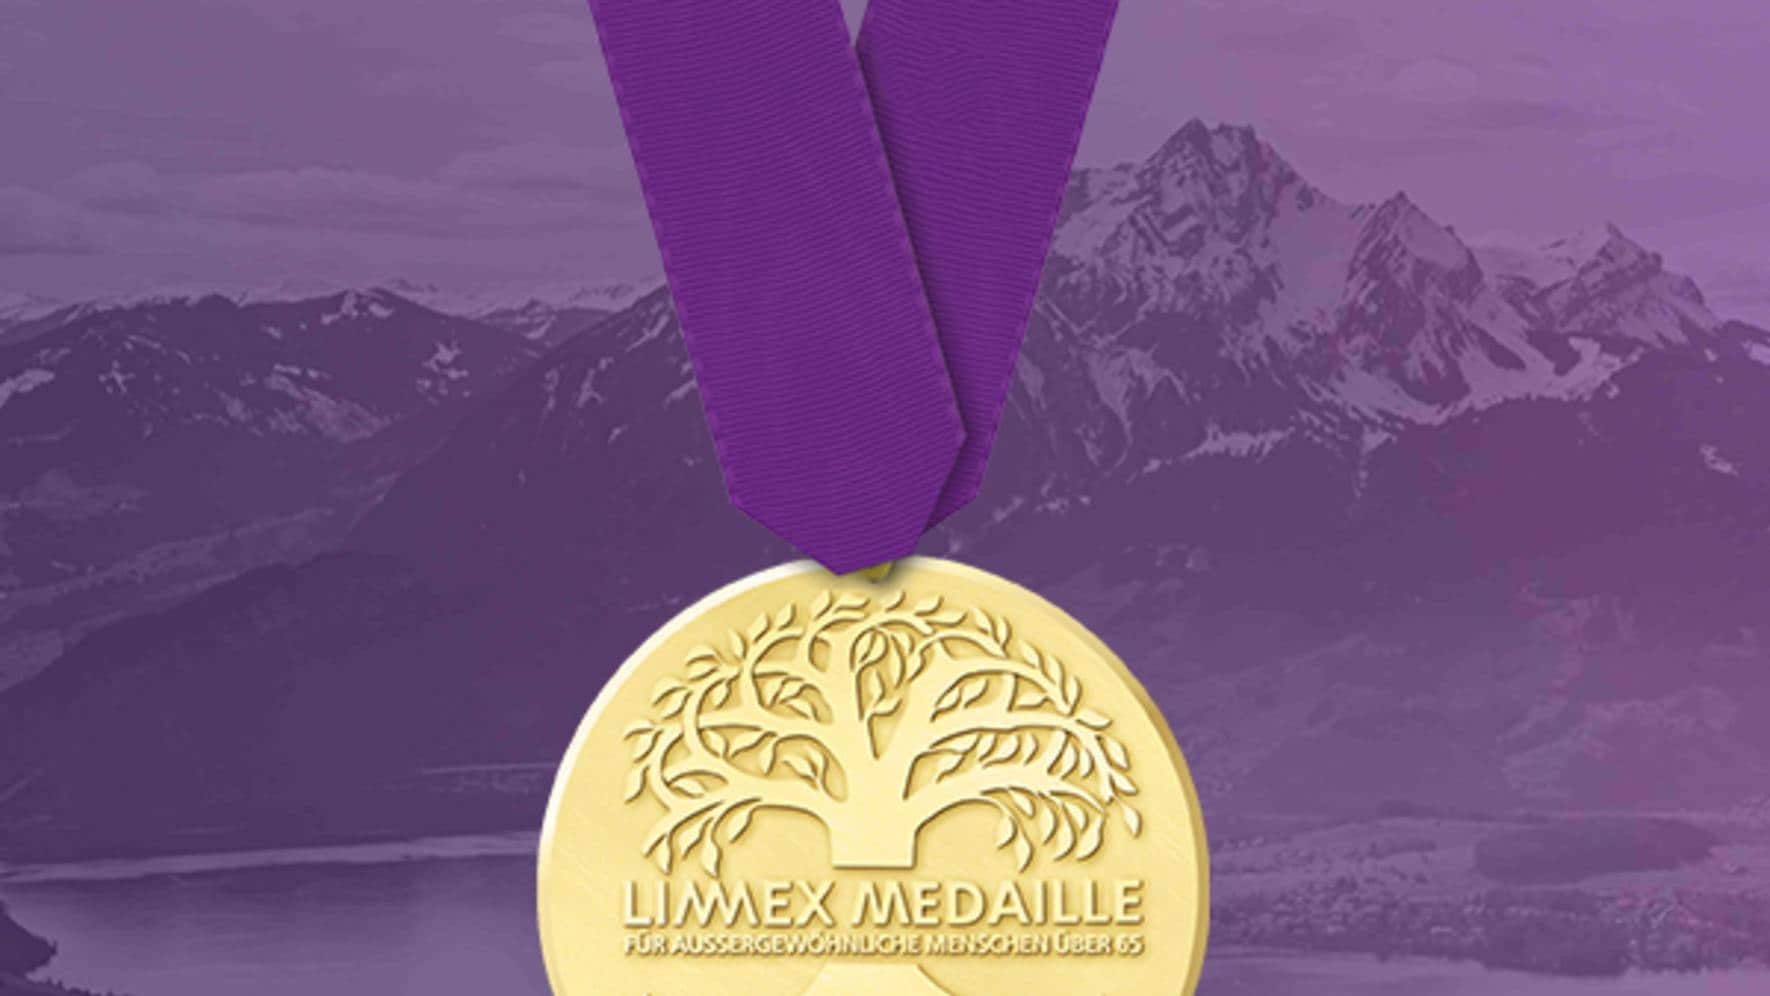 Limmex Medaille